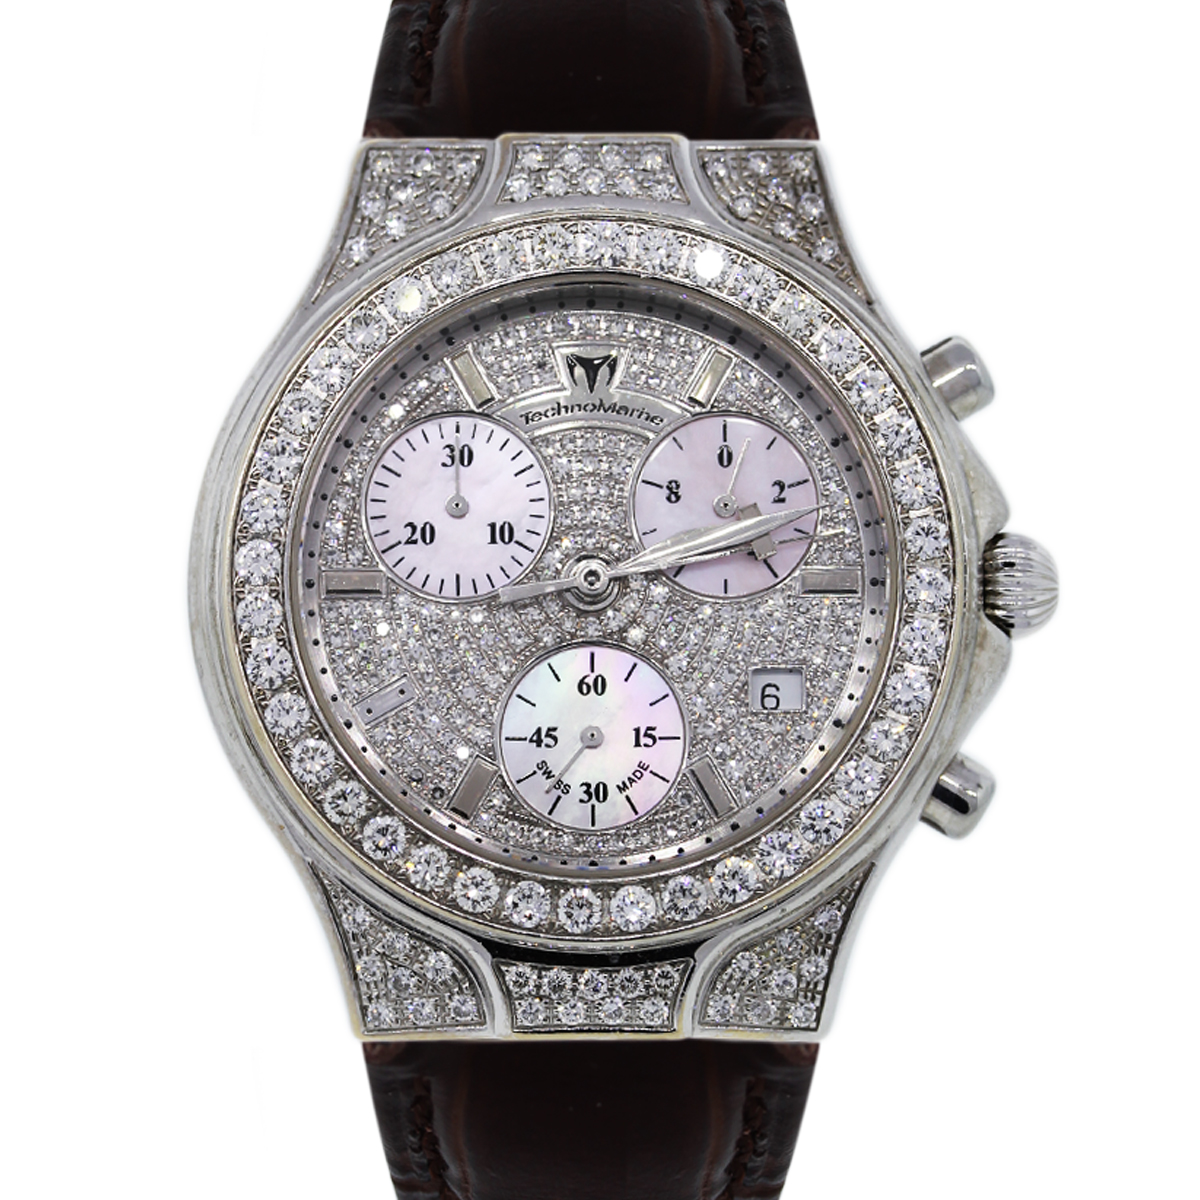 Diamond Watch Technomarine Diva No 0042 All Diamond Watch On Leather Strap